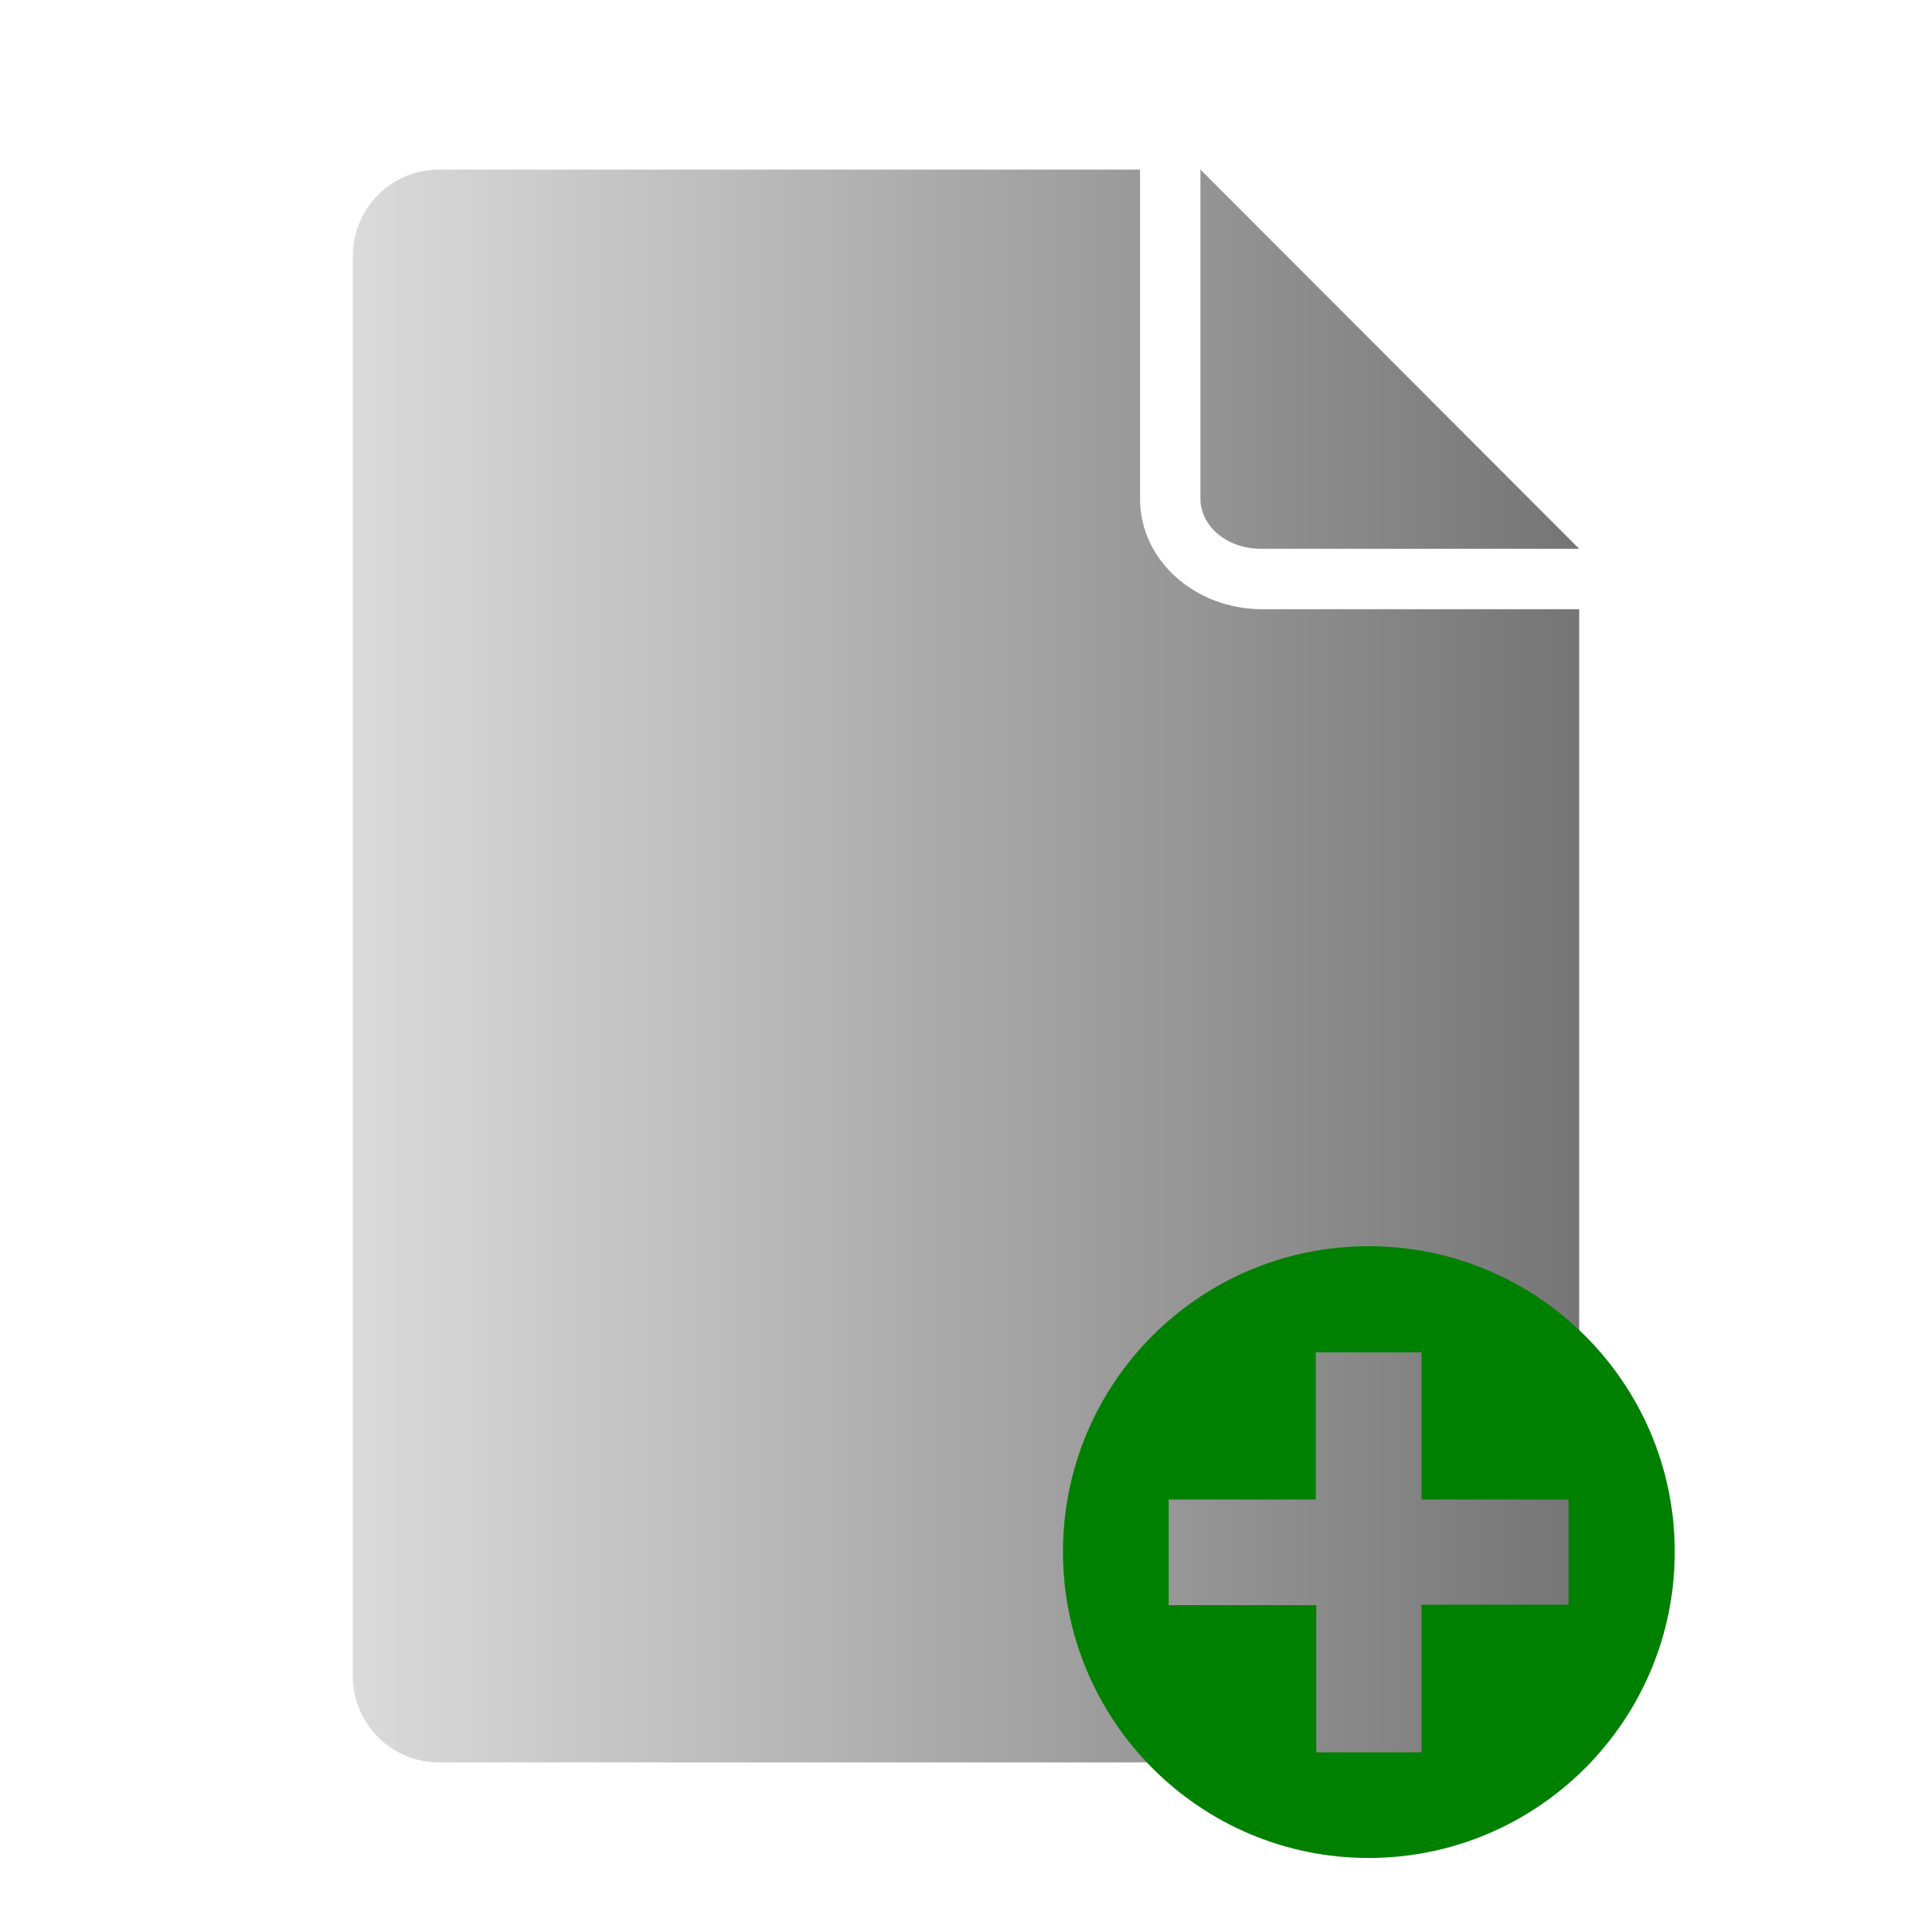 File Add Icon by kuba